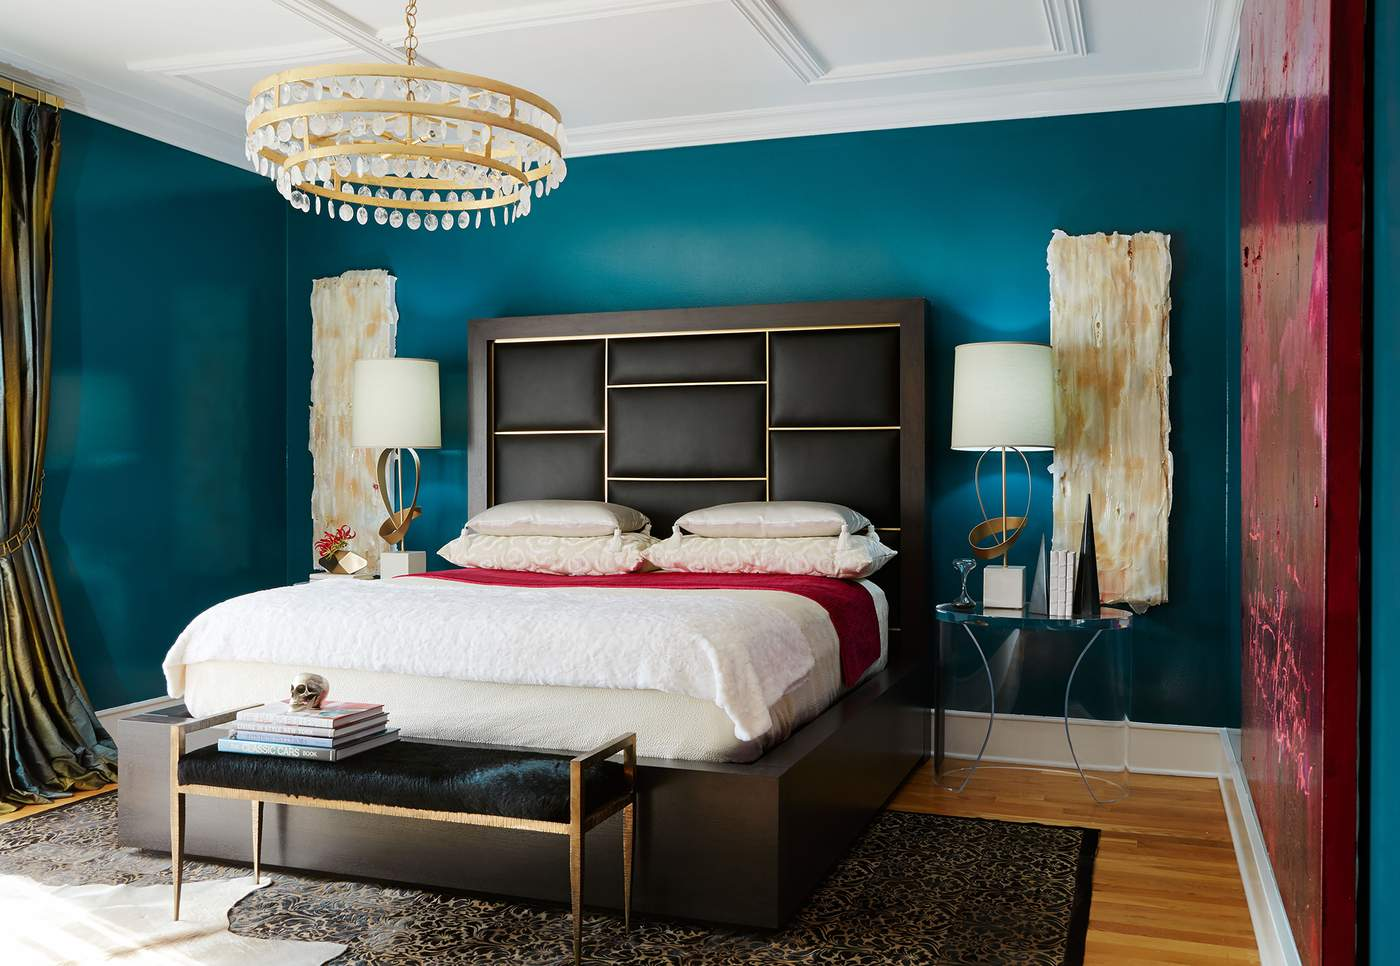 The top 8 home design trends in 2018 Master bedroom colors for 2018